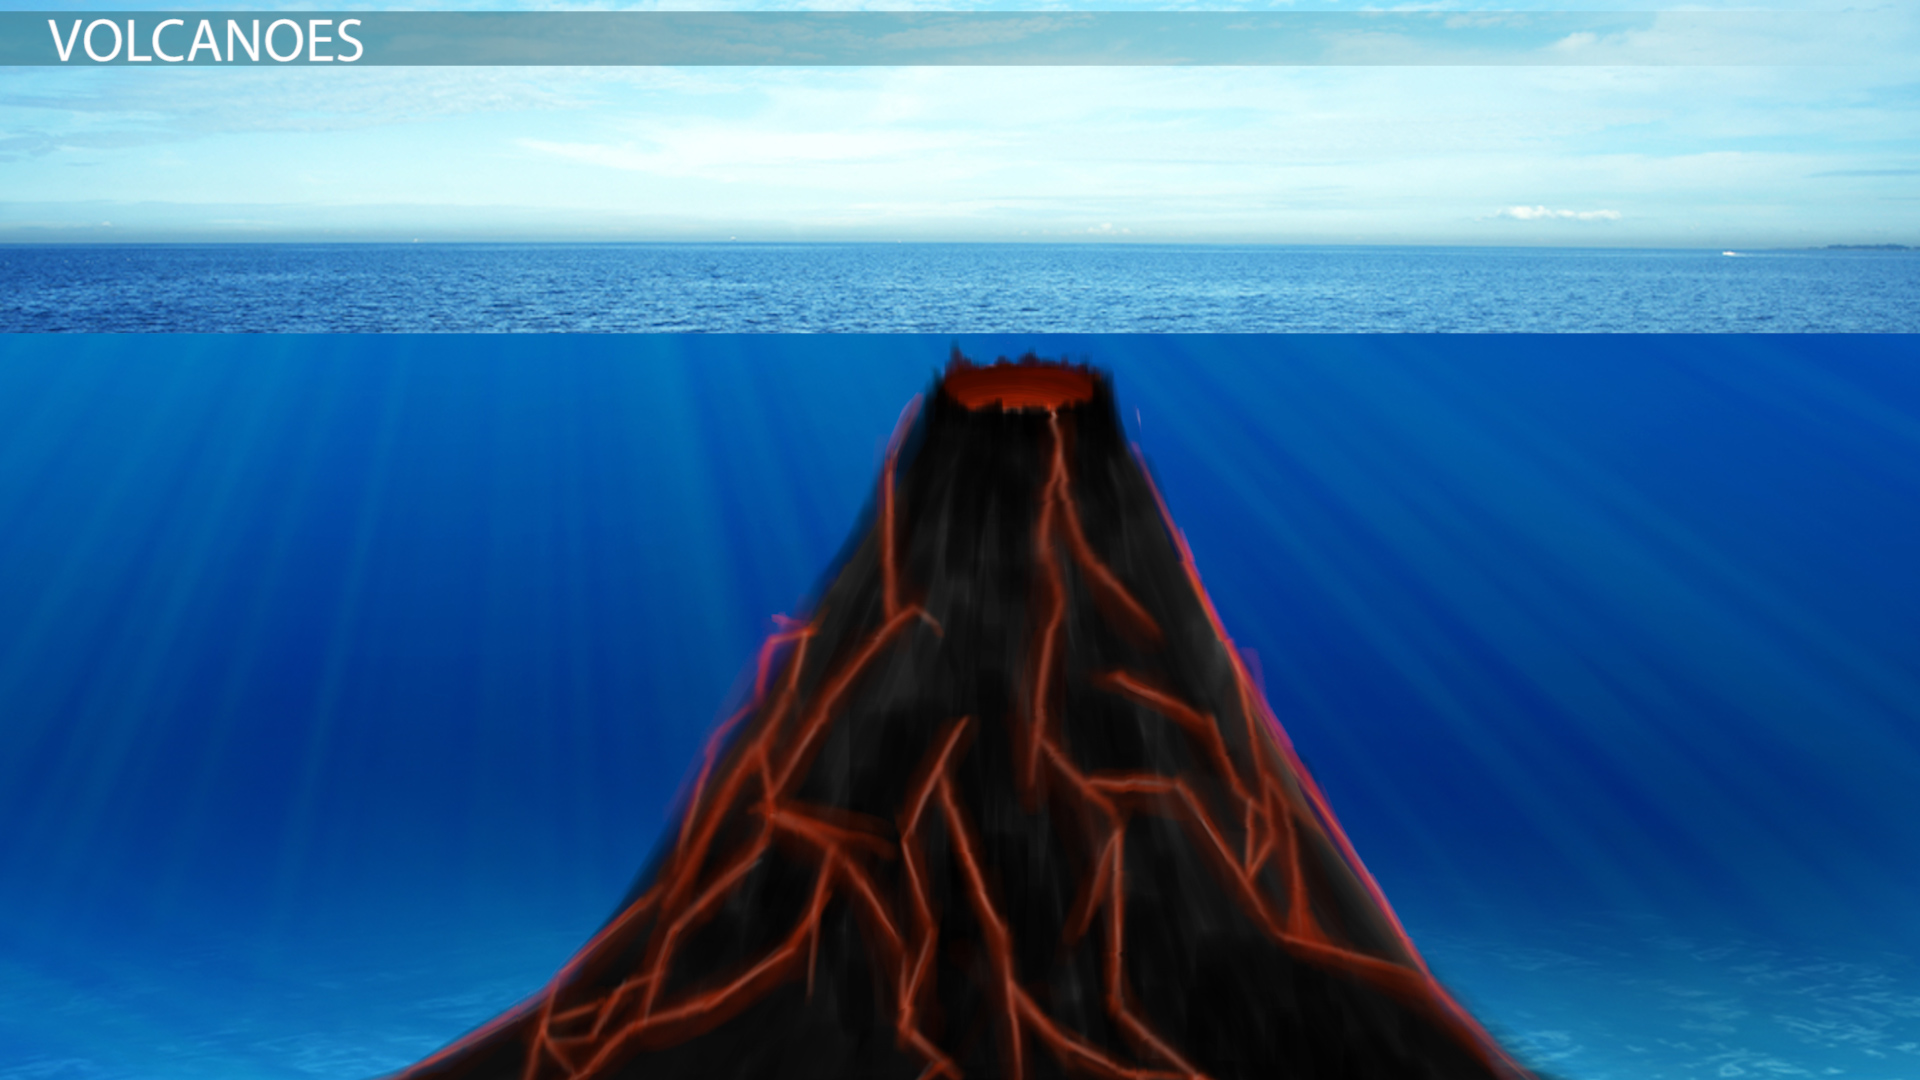 hight resolution of The Changing Earth: Volcanoes